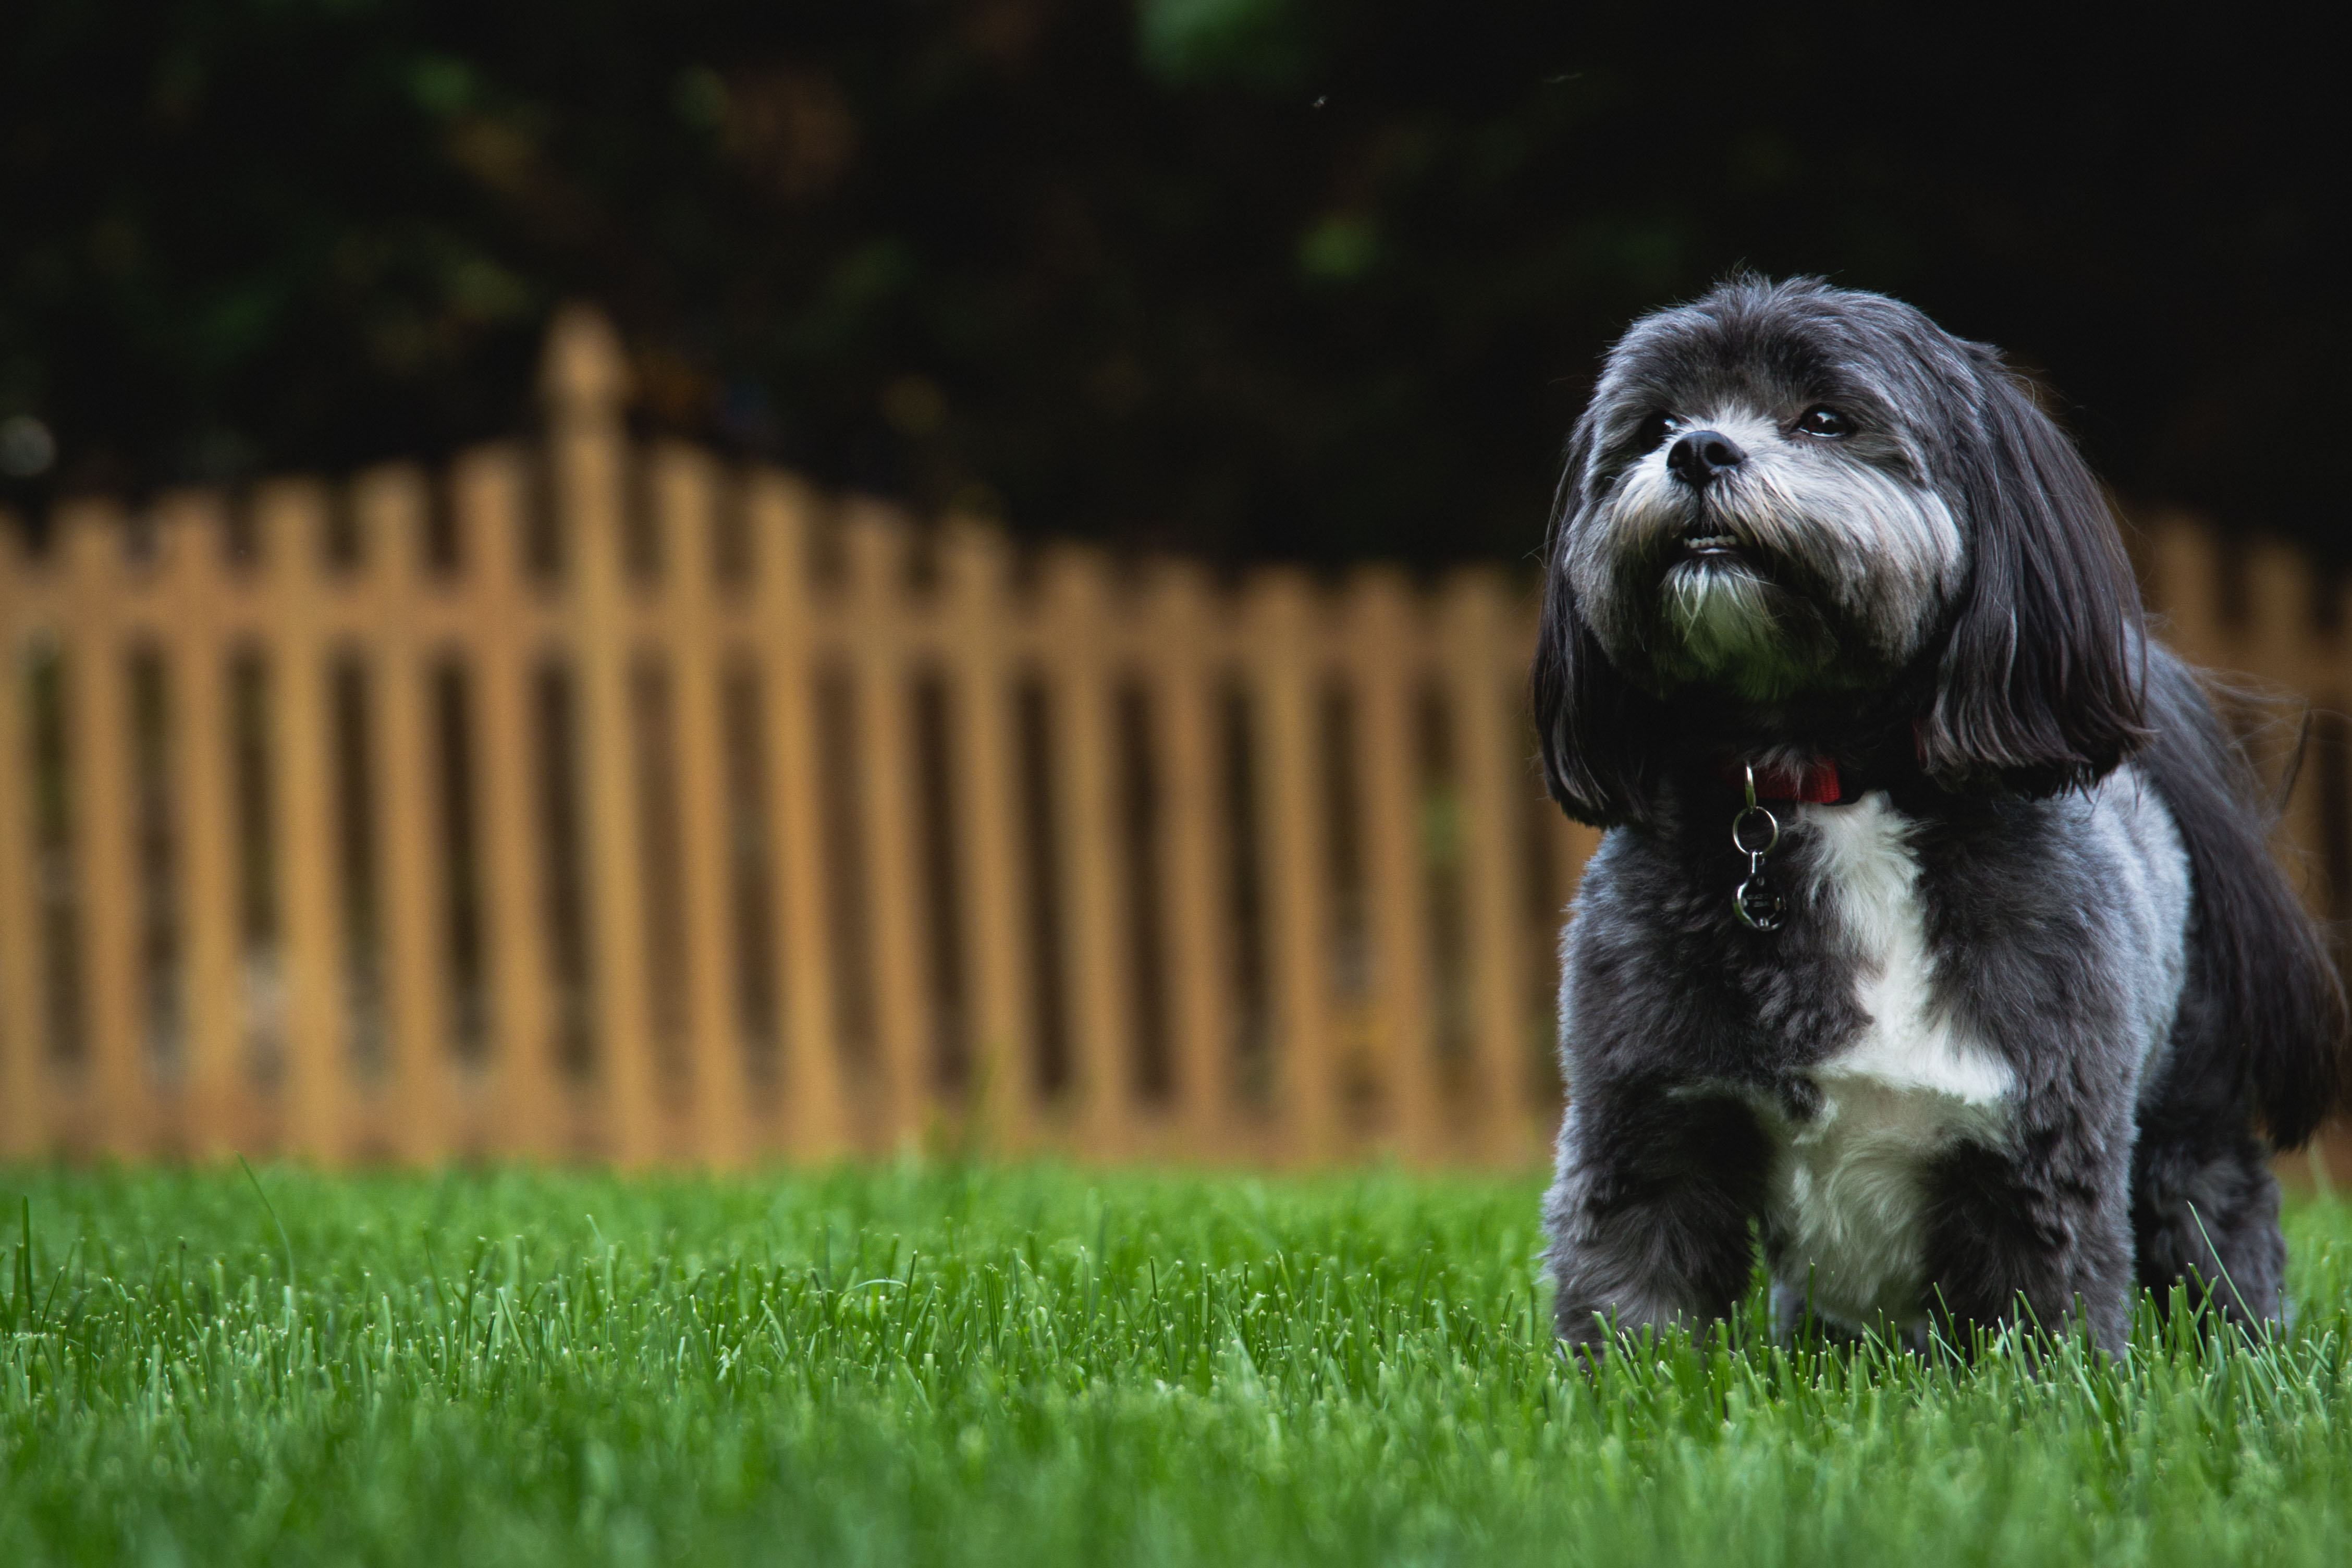 Nutri-Lawn Vancouver are the experts in lawn care in the Lower Mainland.